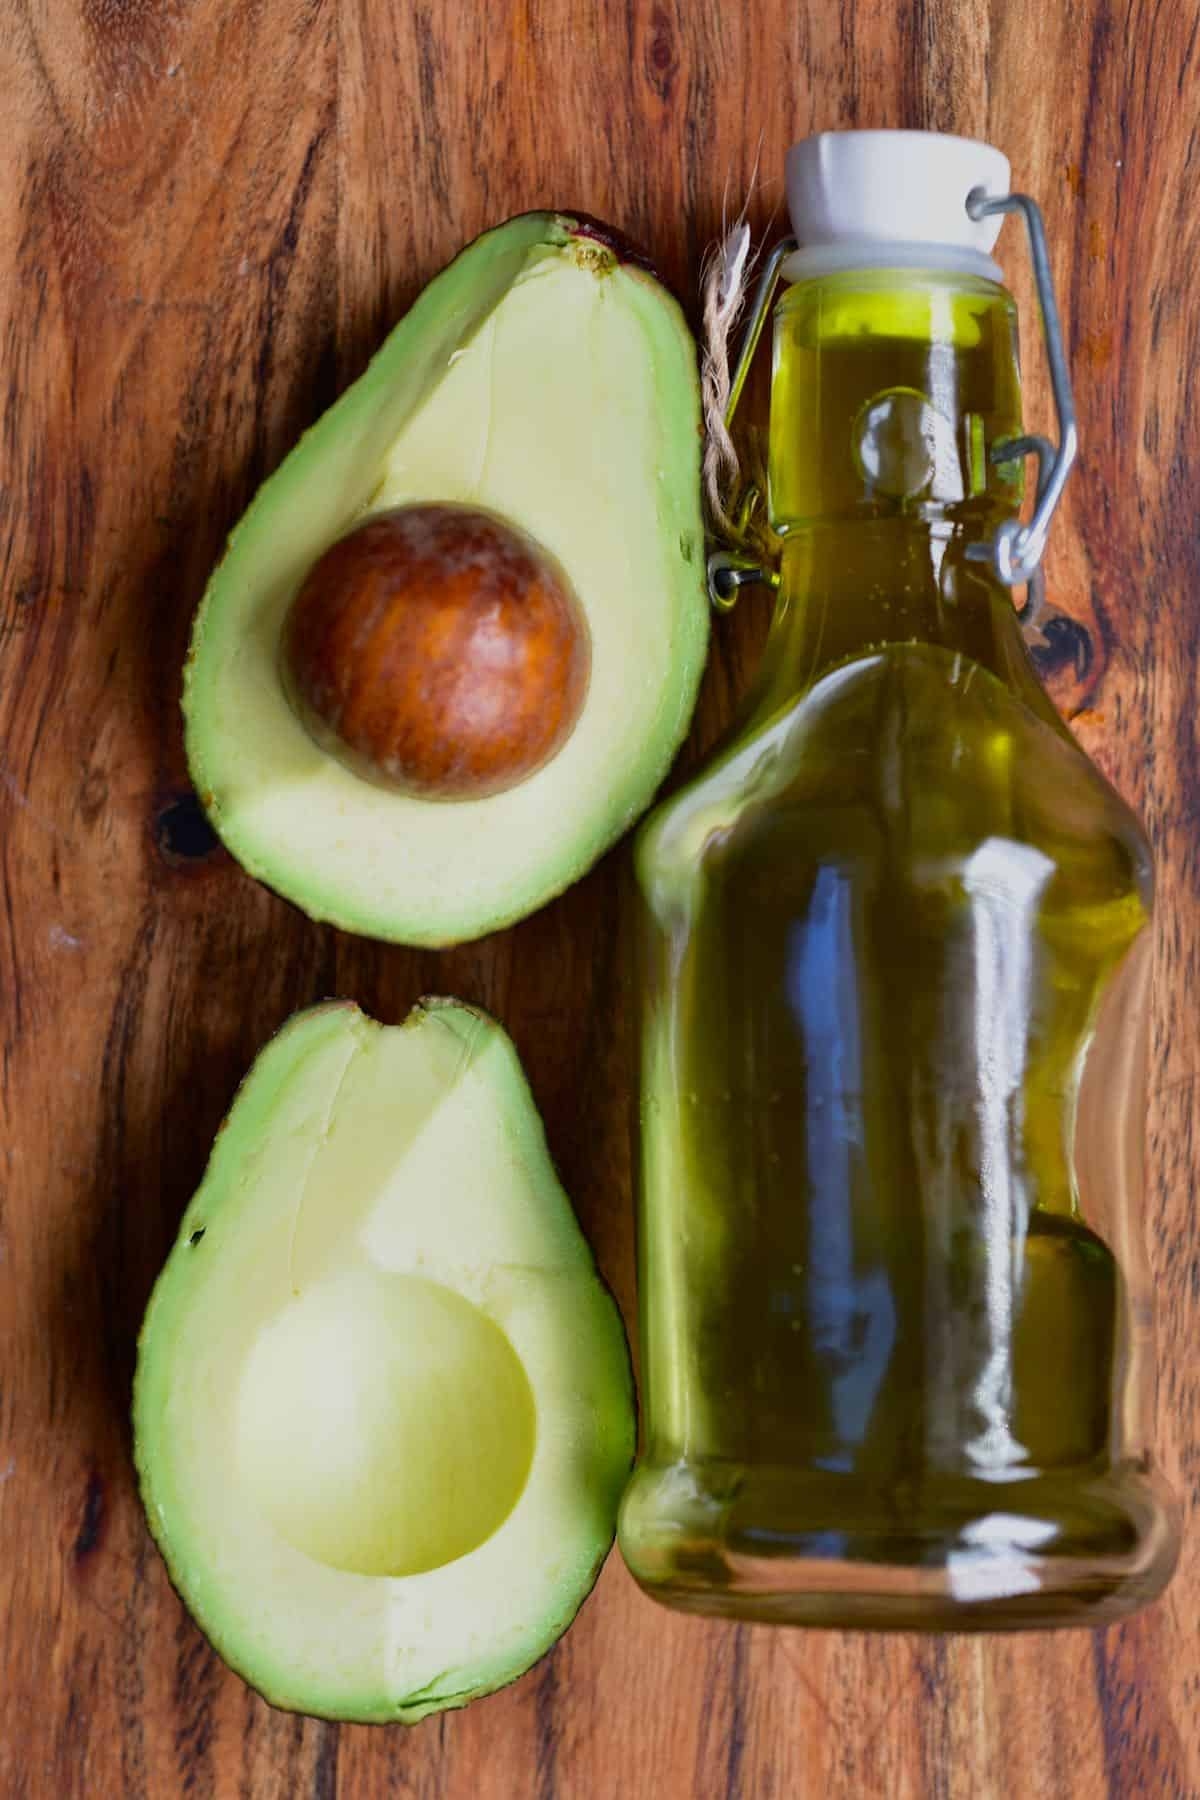 Avocado sliced in two and a small bottle with homemade avocado oil